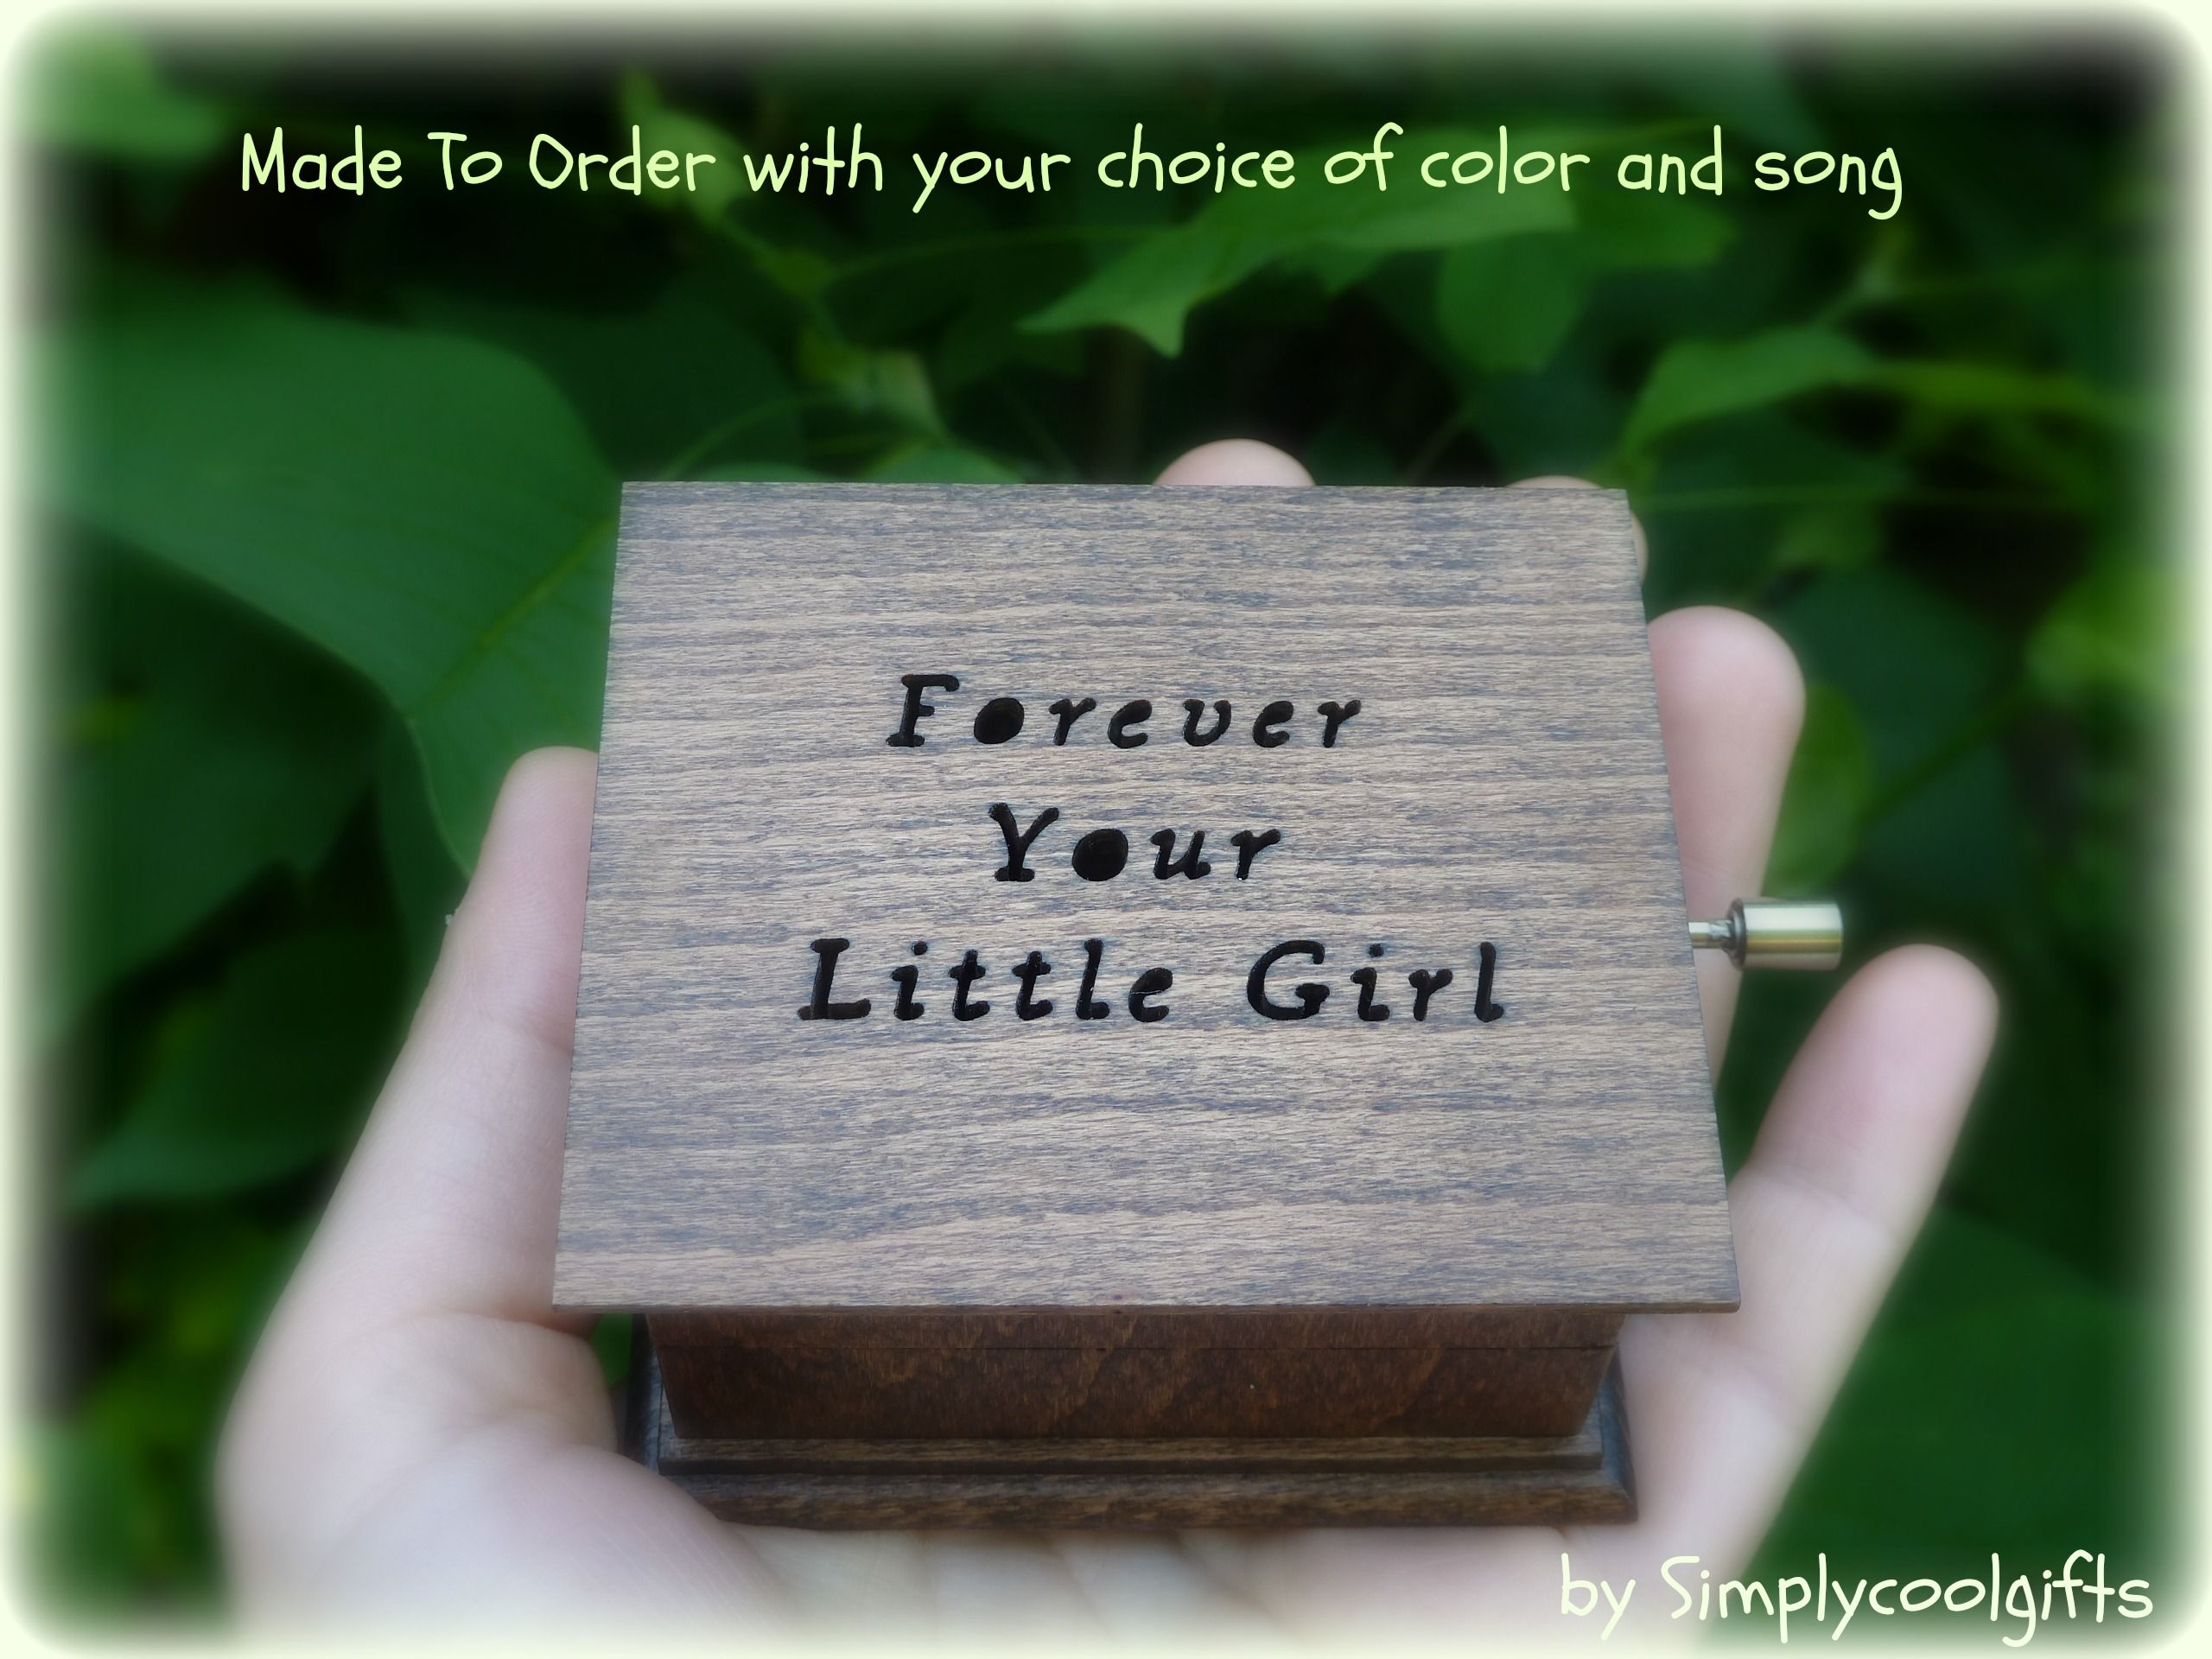 These have the crank on the side of the wooden box, these music boxes play the song while you are turning the handle! If you stop turning the handle, the music stops playing as well!  These music boxes can have open lids or they can be sealed shut! You can check them out here: https://www.etsy.com/shop/Simplycoolgifts?section_id=11242244&ref=shopsection_leftnav_1